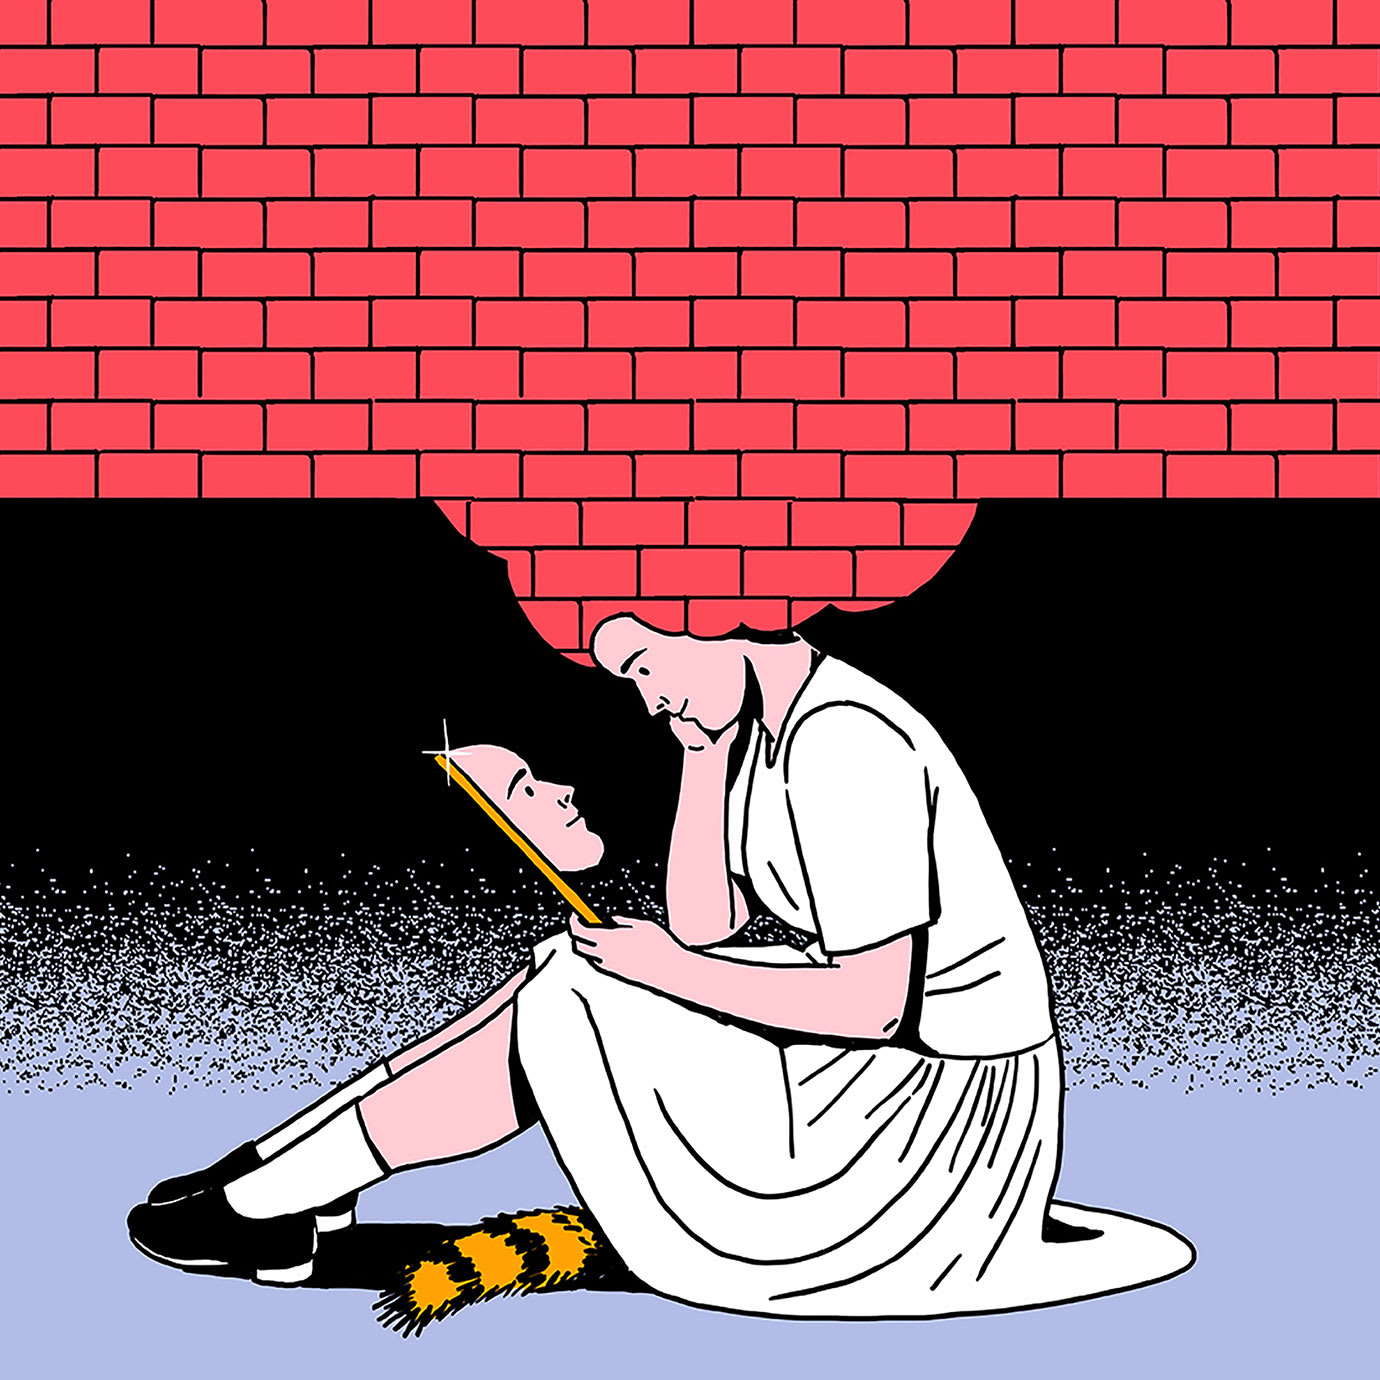 An illustration of a woman sitting under red brick wall looking at her face in a mirror.